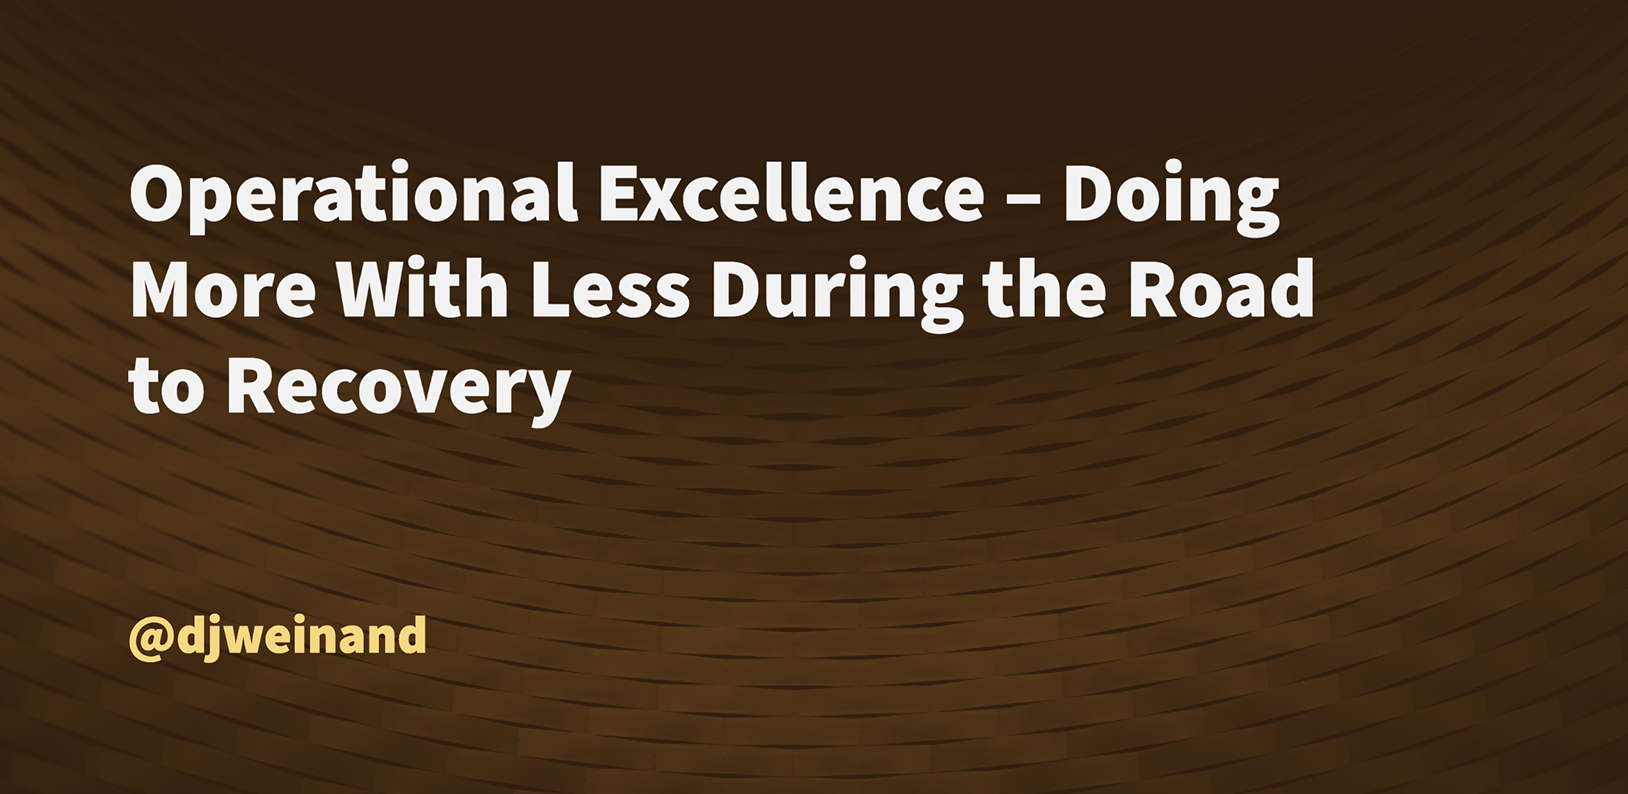 Operational Excellence – Doing More With Less During the Road to Recovery